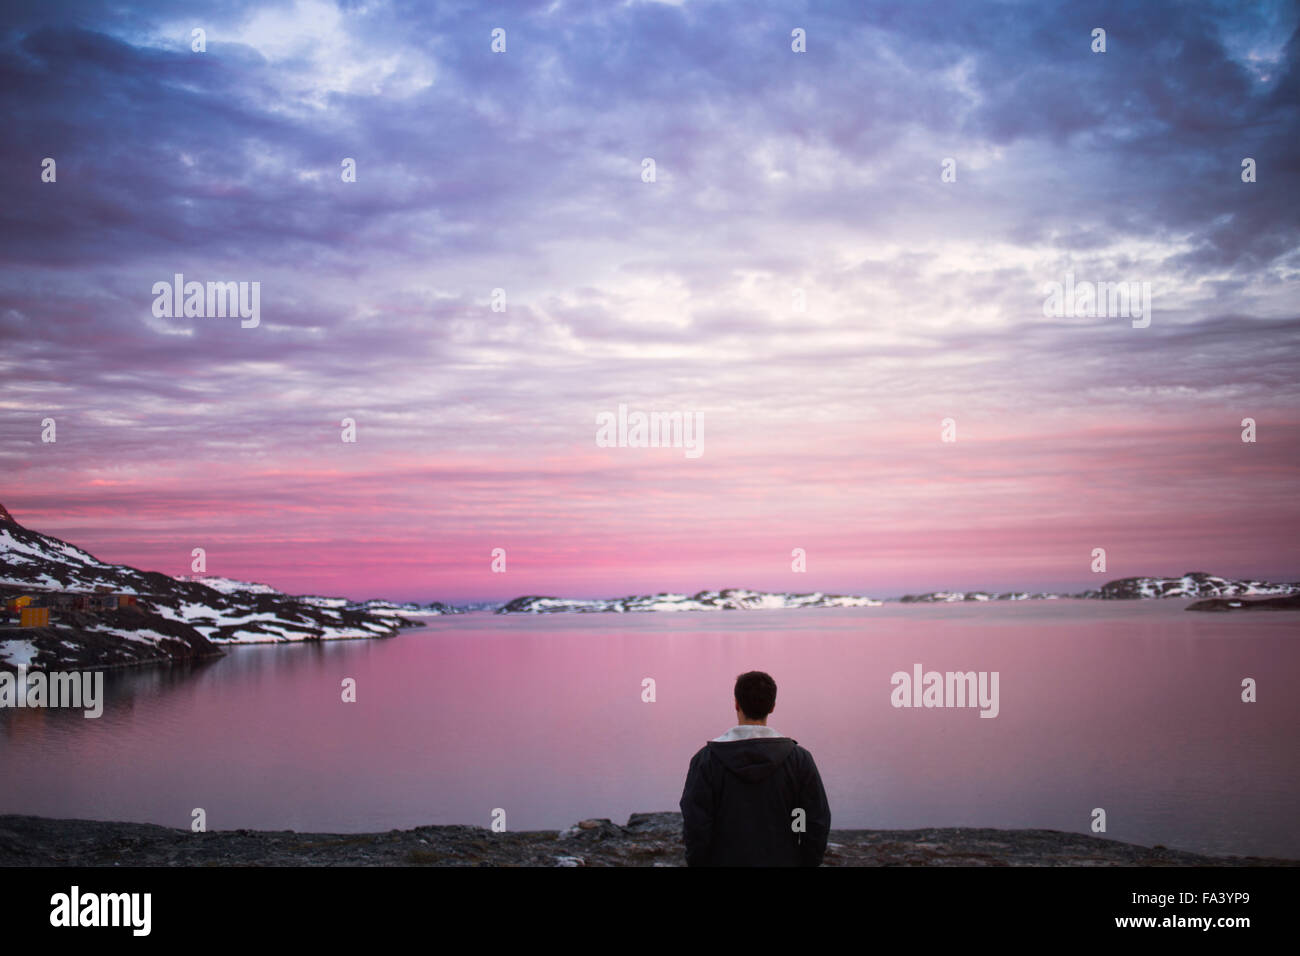 Rear view of young man on shore enjoying the sunset view during winter - Stock Image